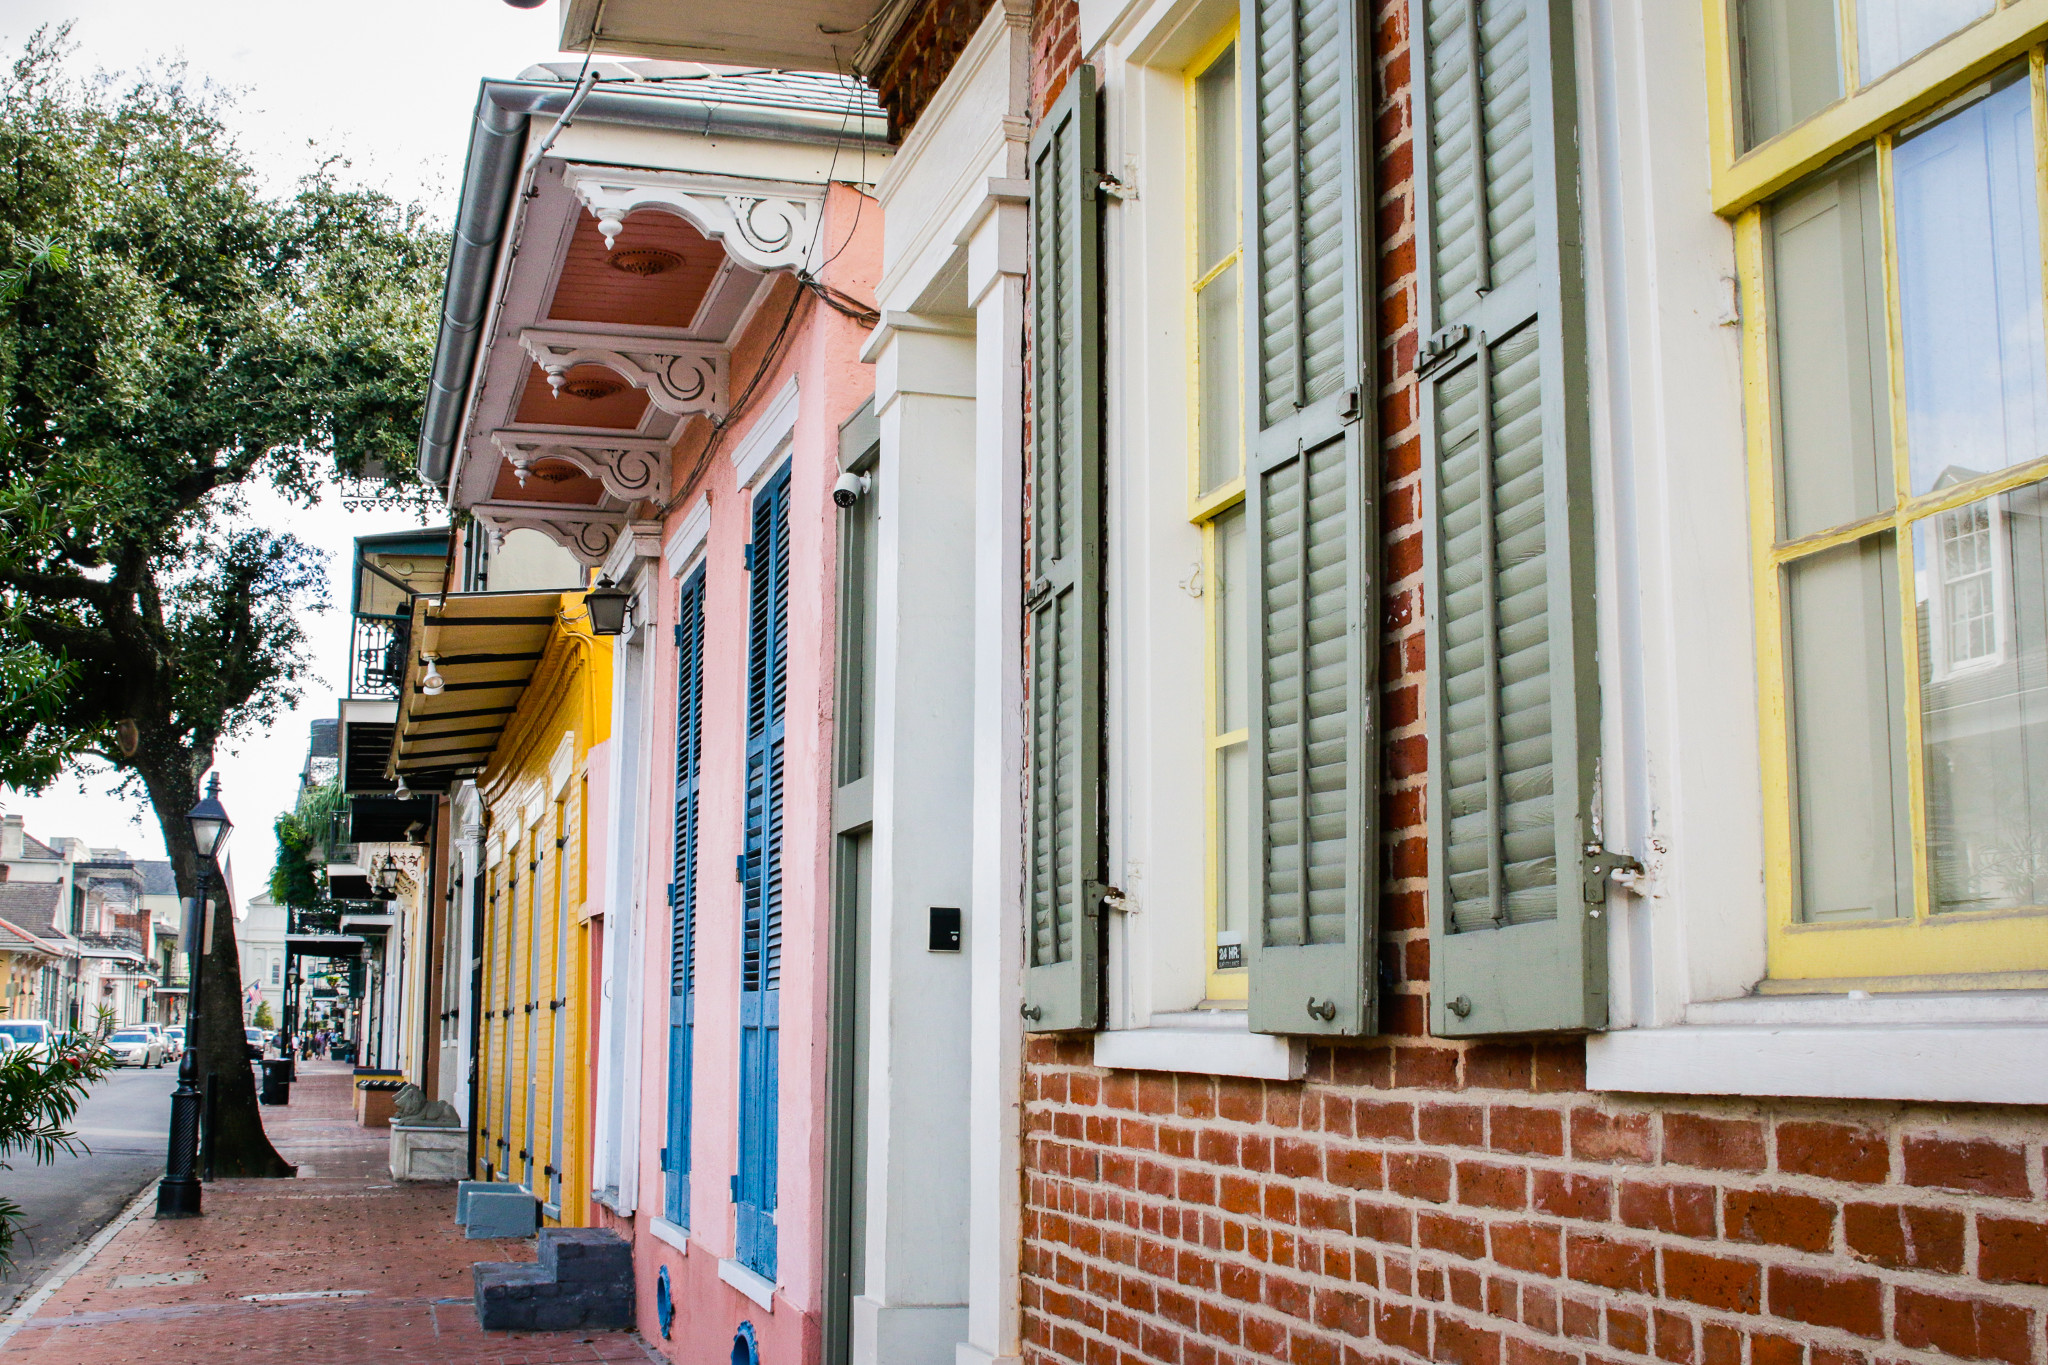 Colorful homes in the French Quarter. (Photo: Rebecca Ratliff)